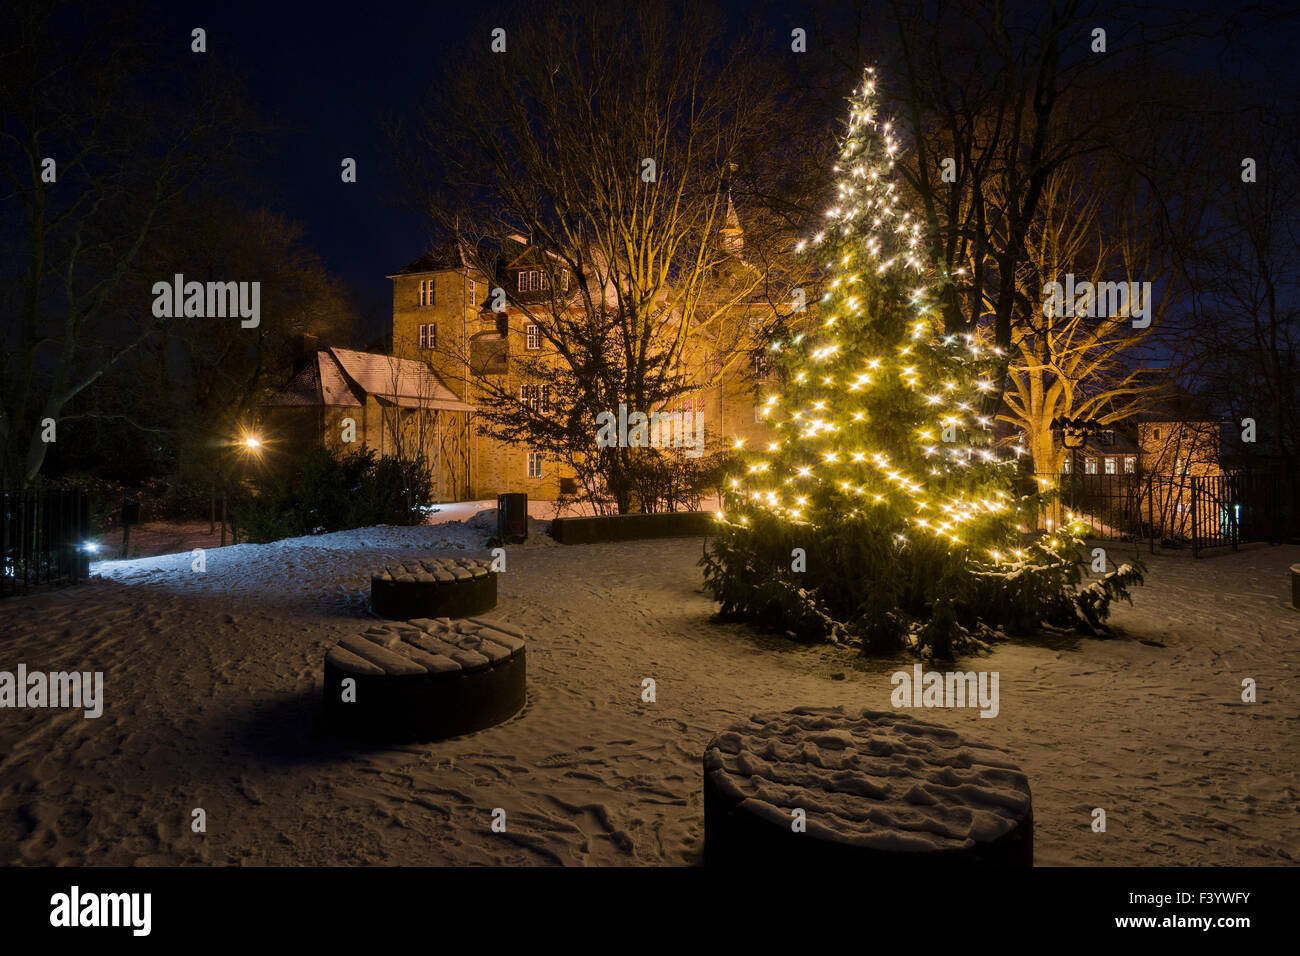 The Upper Castle in Siegen, christmas tree - Stock Image